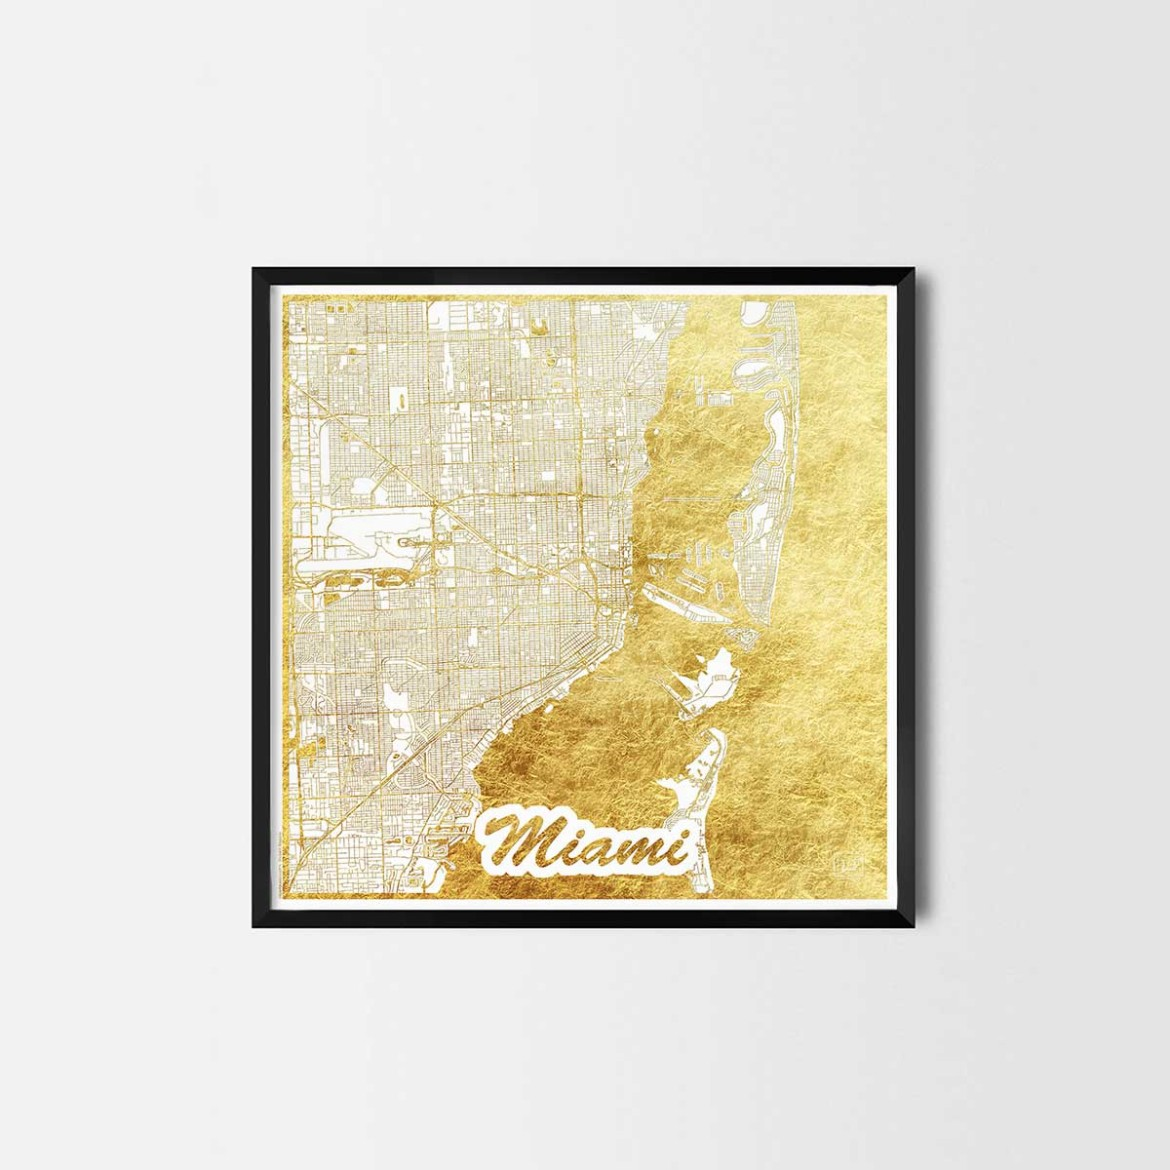 Miami gift - Map Art Prints and Posters, Home Decor Gifts